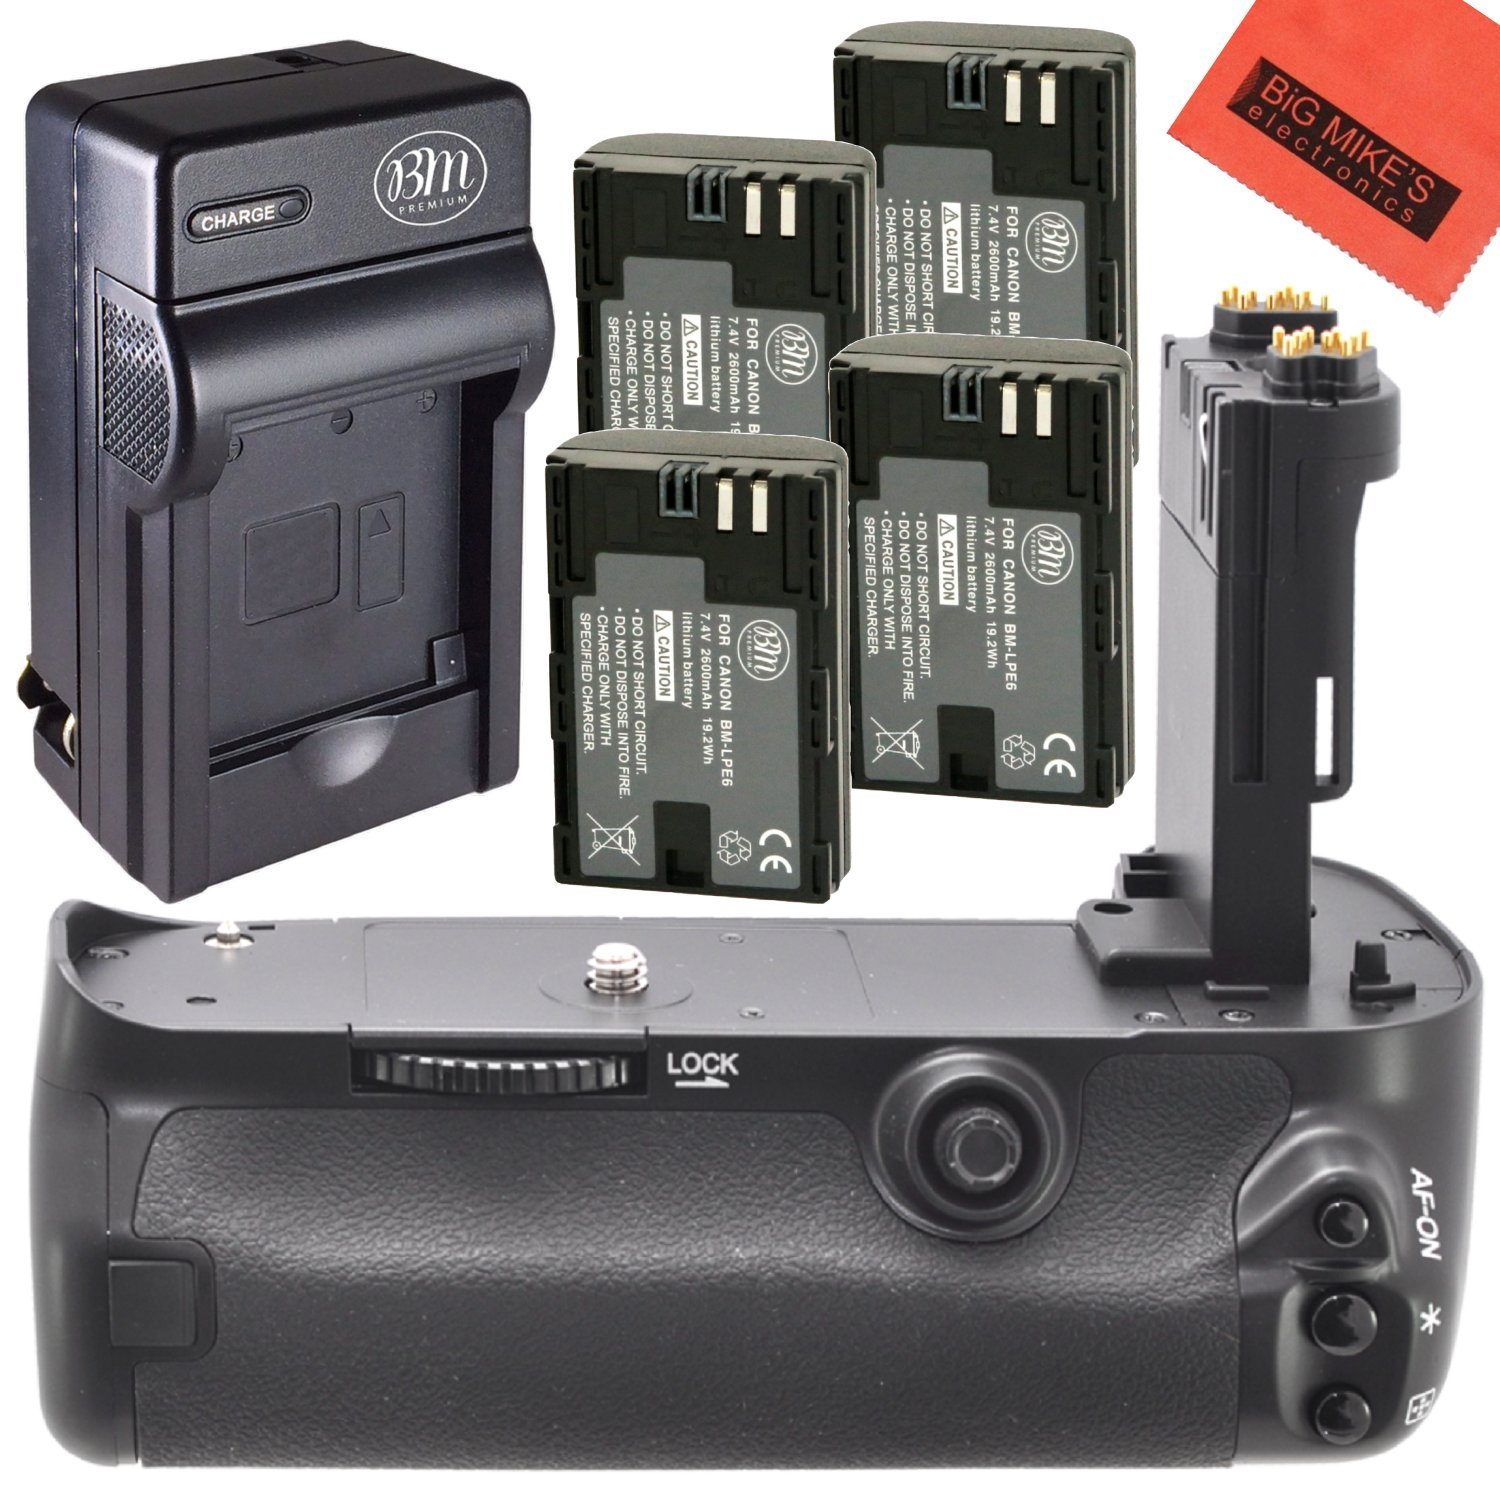 Battery Grip Kit for Canon EOS 5D Mark III, EOS 5DS, EOS 5DS R Digital SLR Camera Includes Vertical Battery Grip + Qty 4 Replacement LP-E6 Batteries + Rapid AC/DC Charger